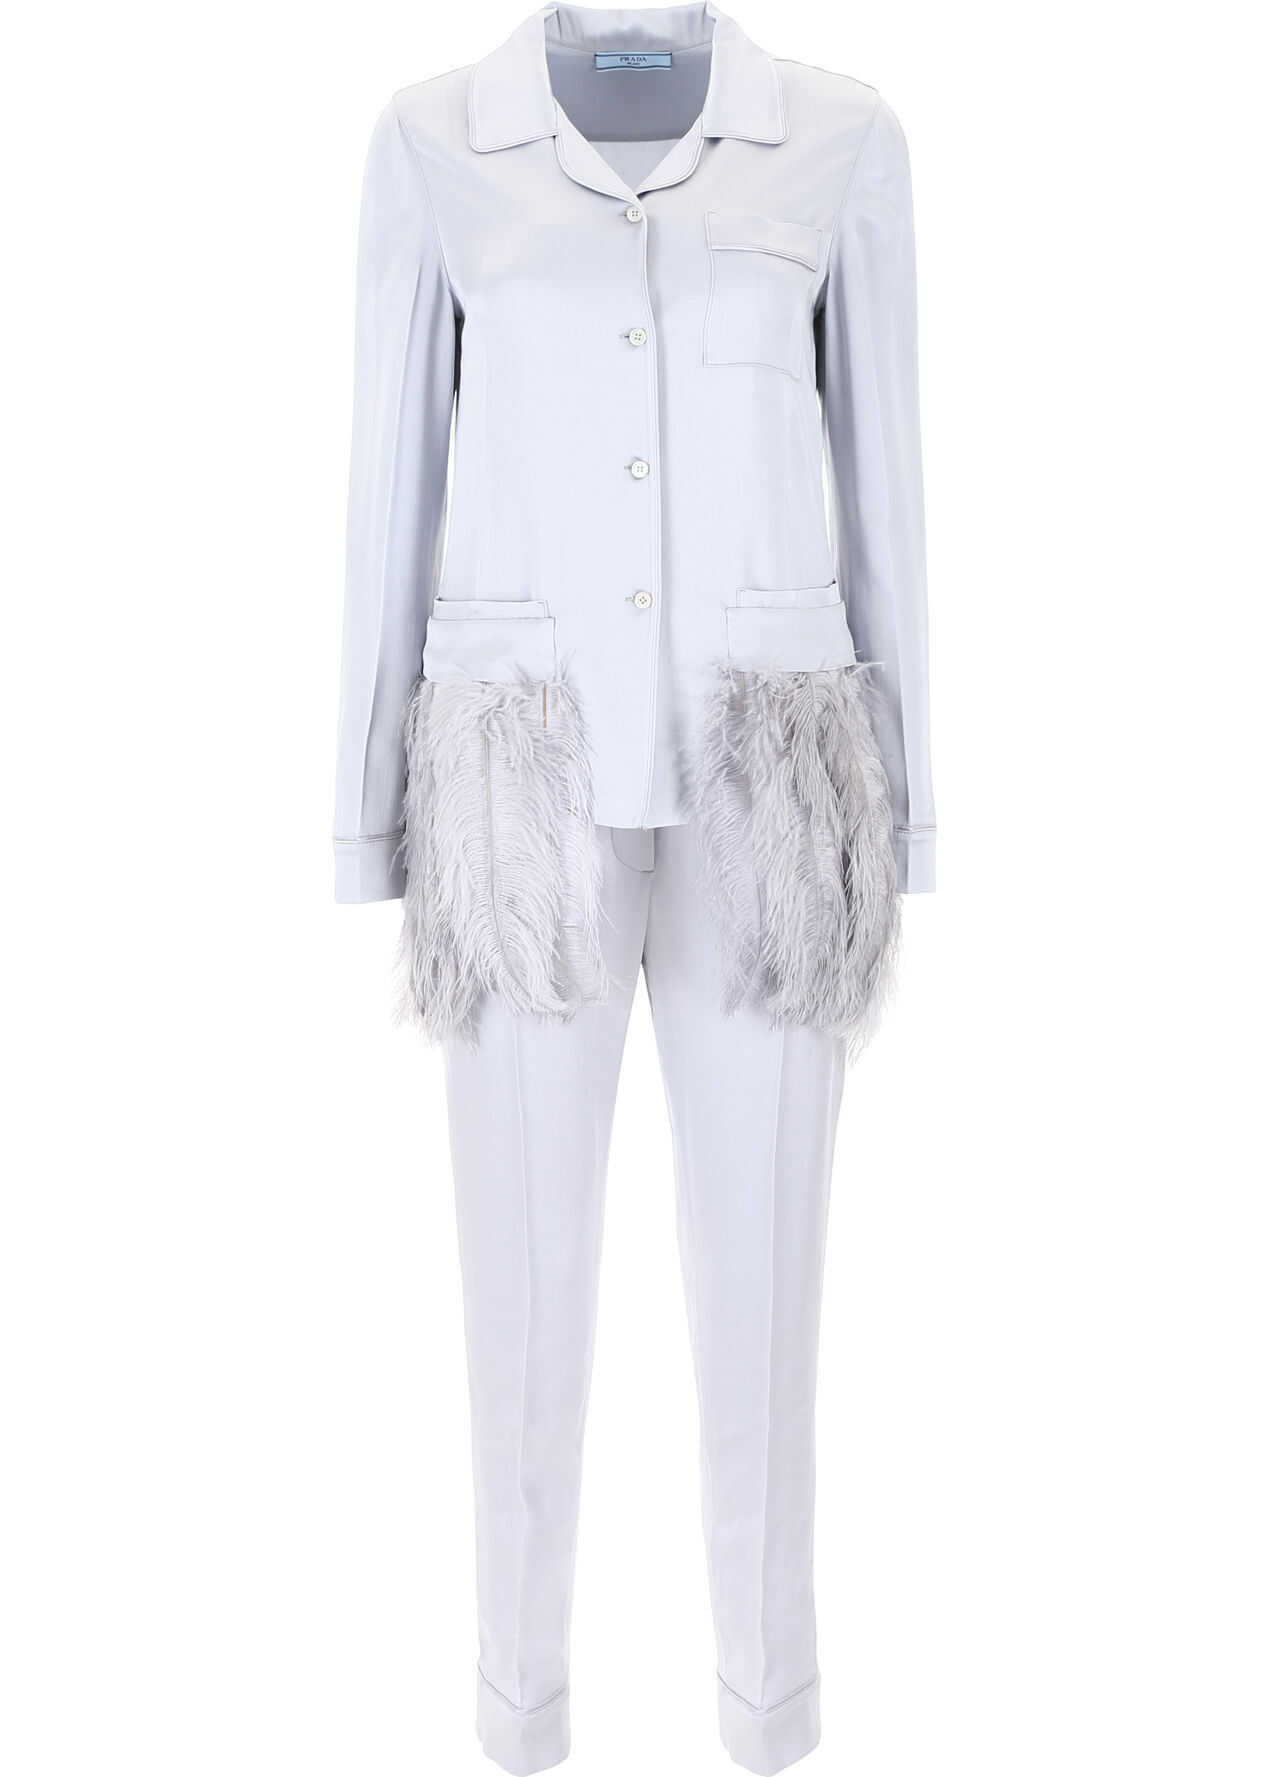 Prada Satin Pyjama Set With Feathers OPALINE